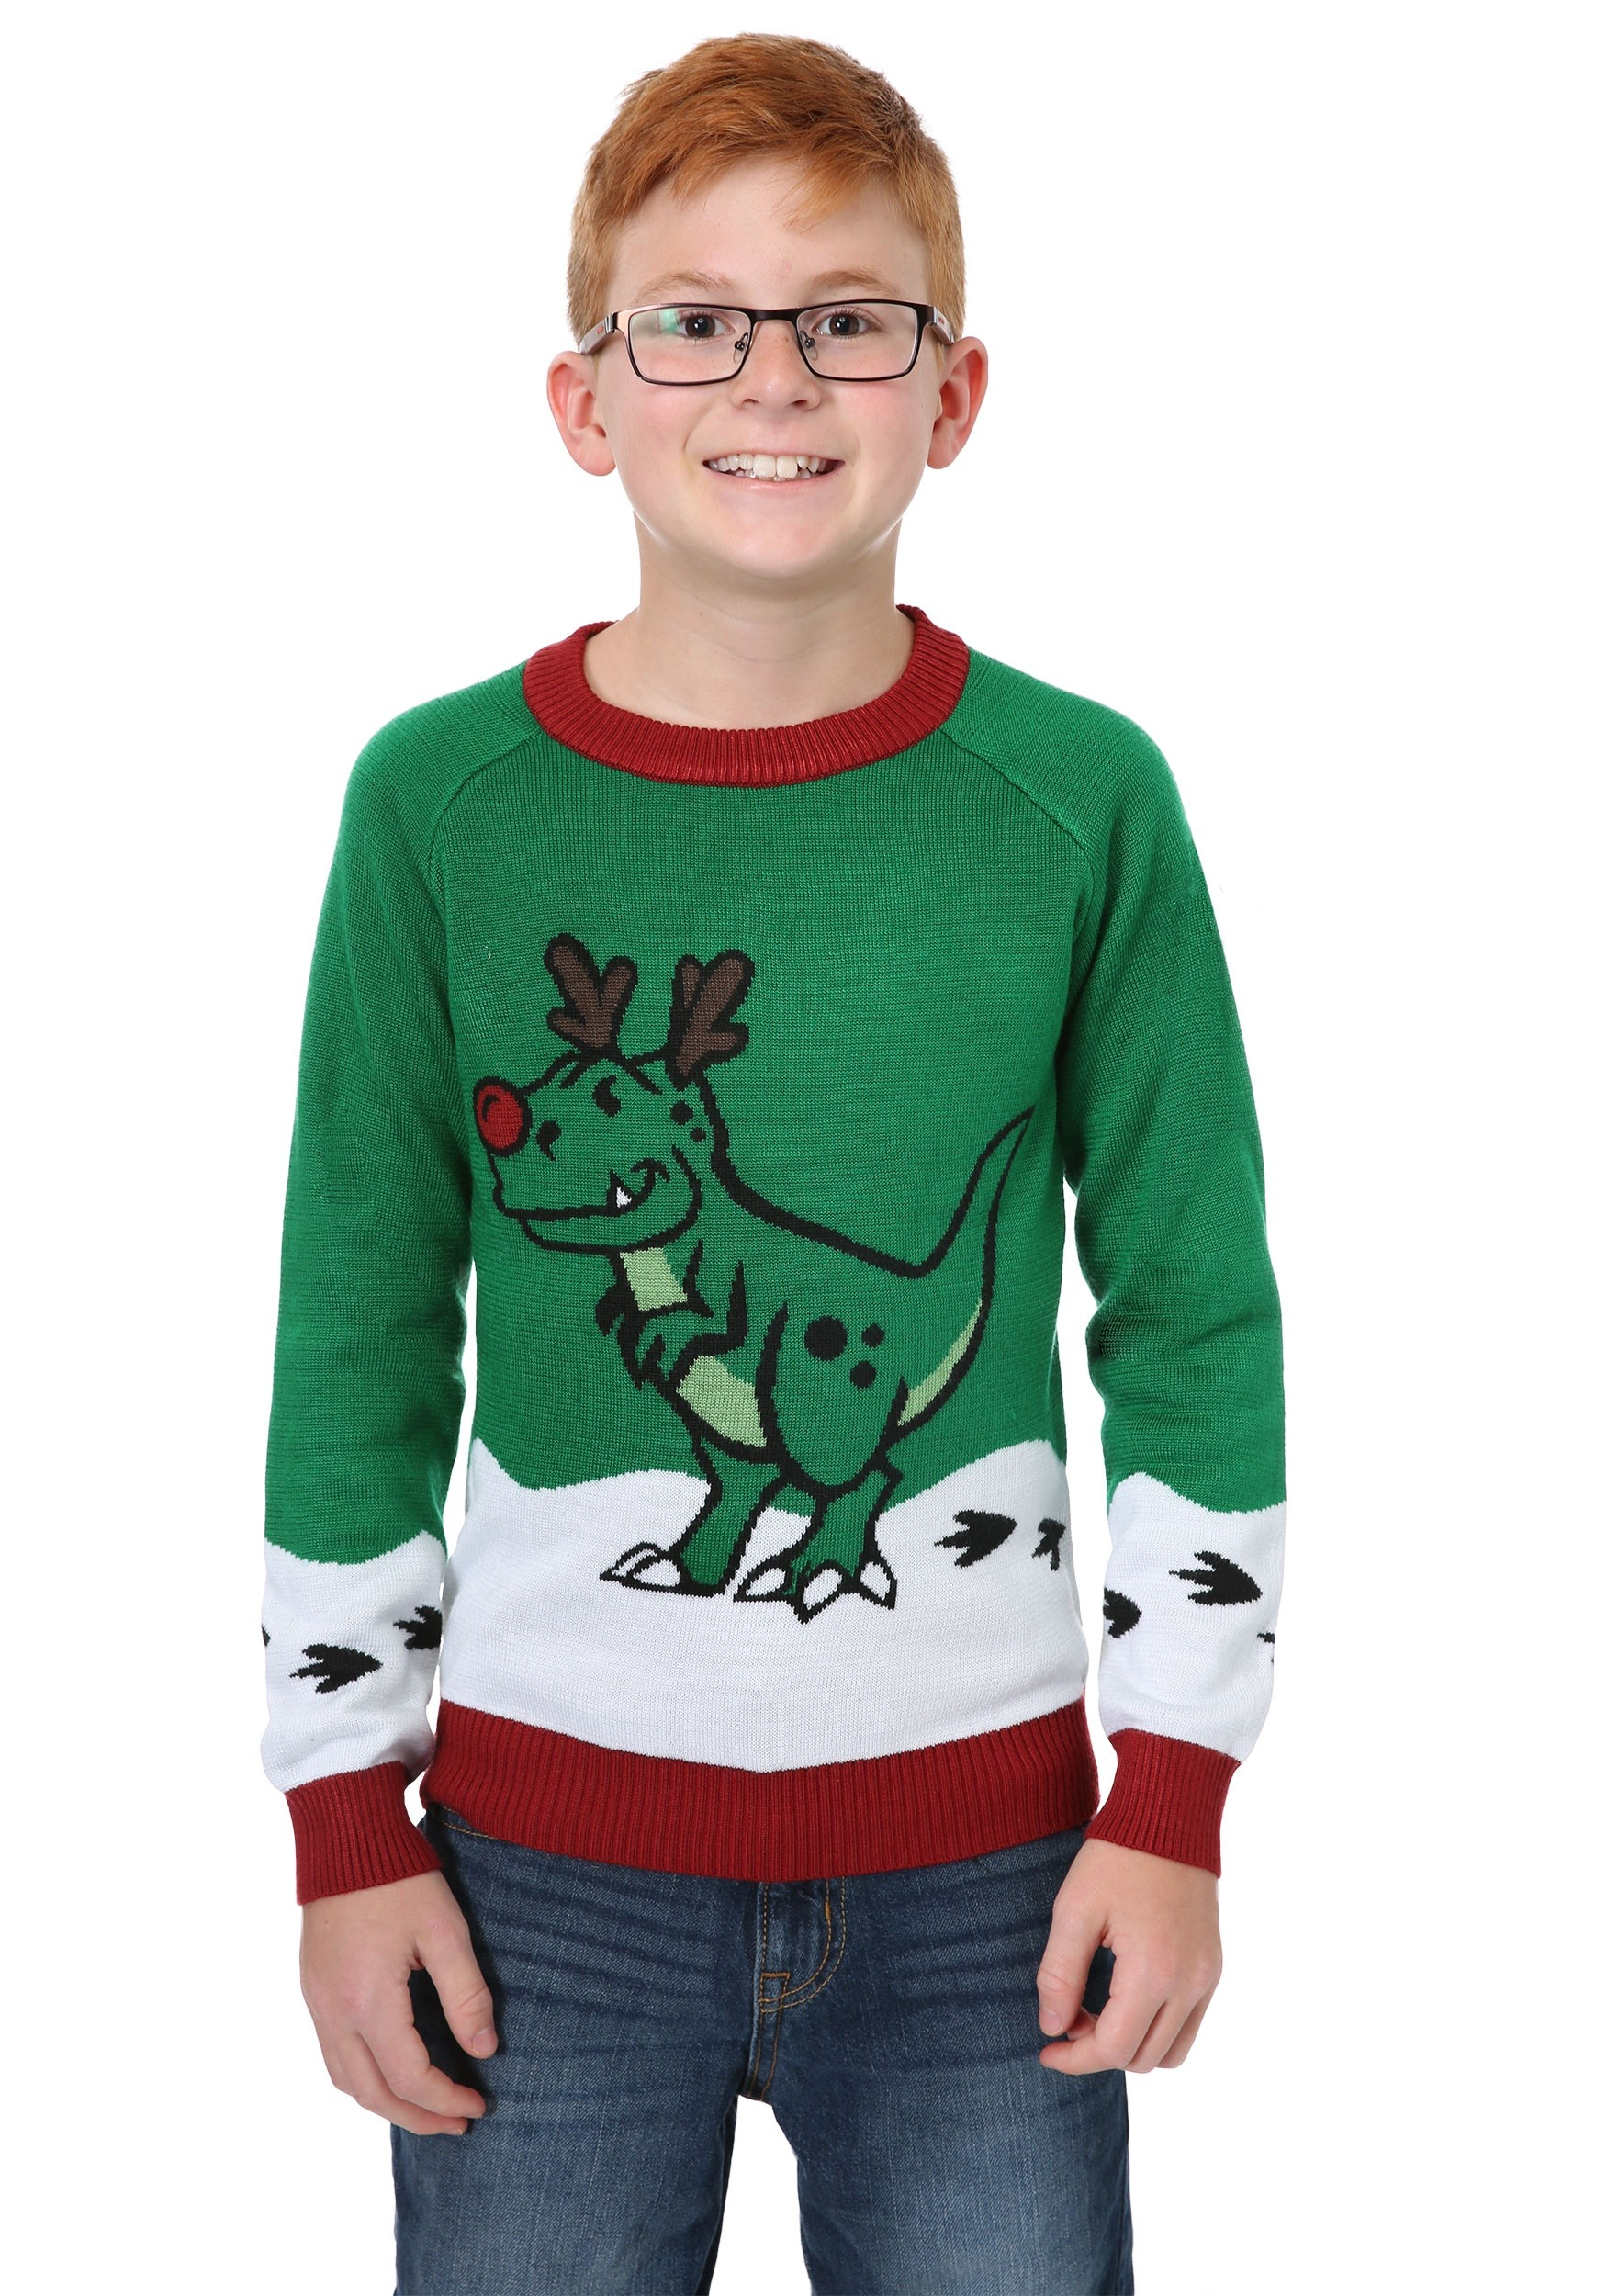 Toddler Boy Christmas Sweater